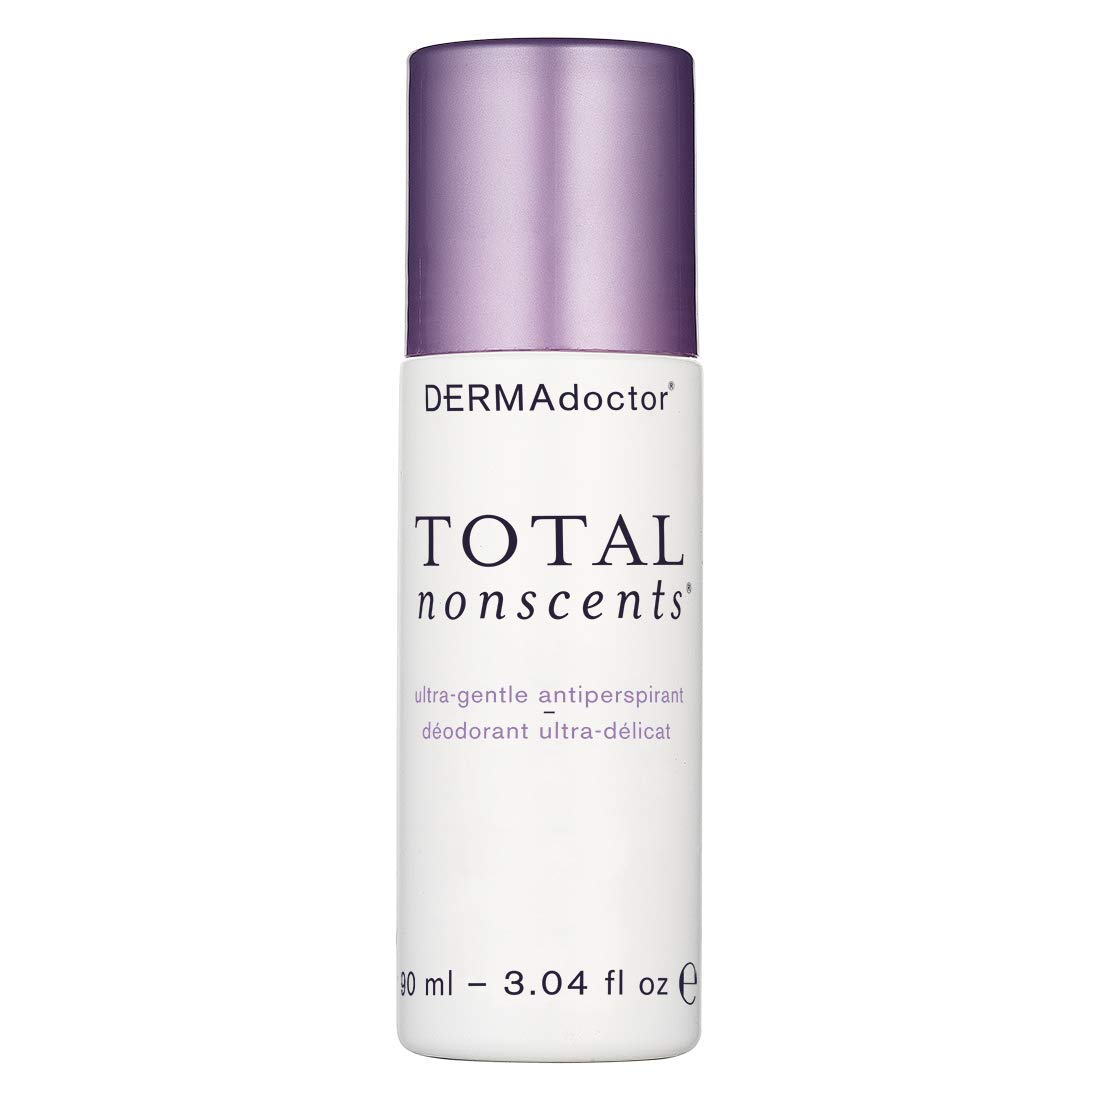 DERMAdoctor Total NonScents Ultra-Gentle Antiperspirant, 3.04 fl oz